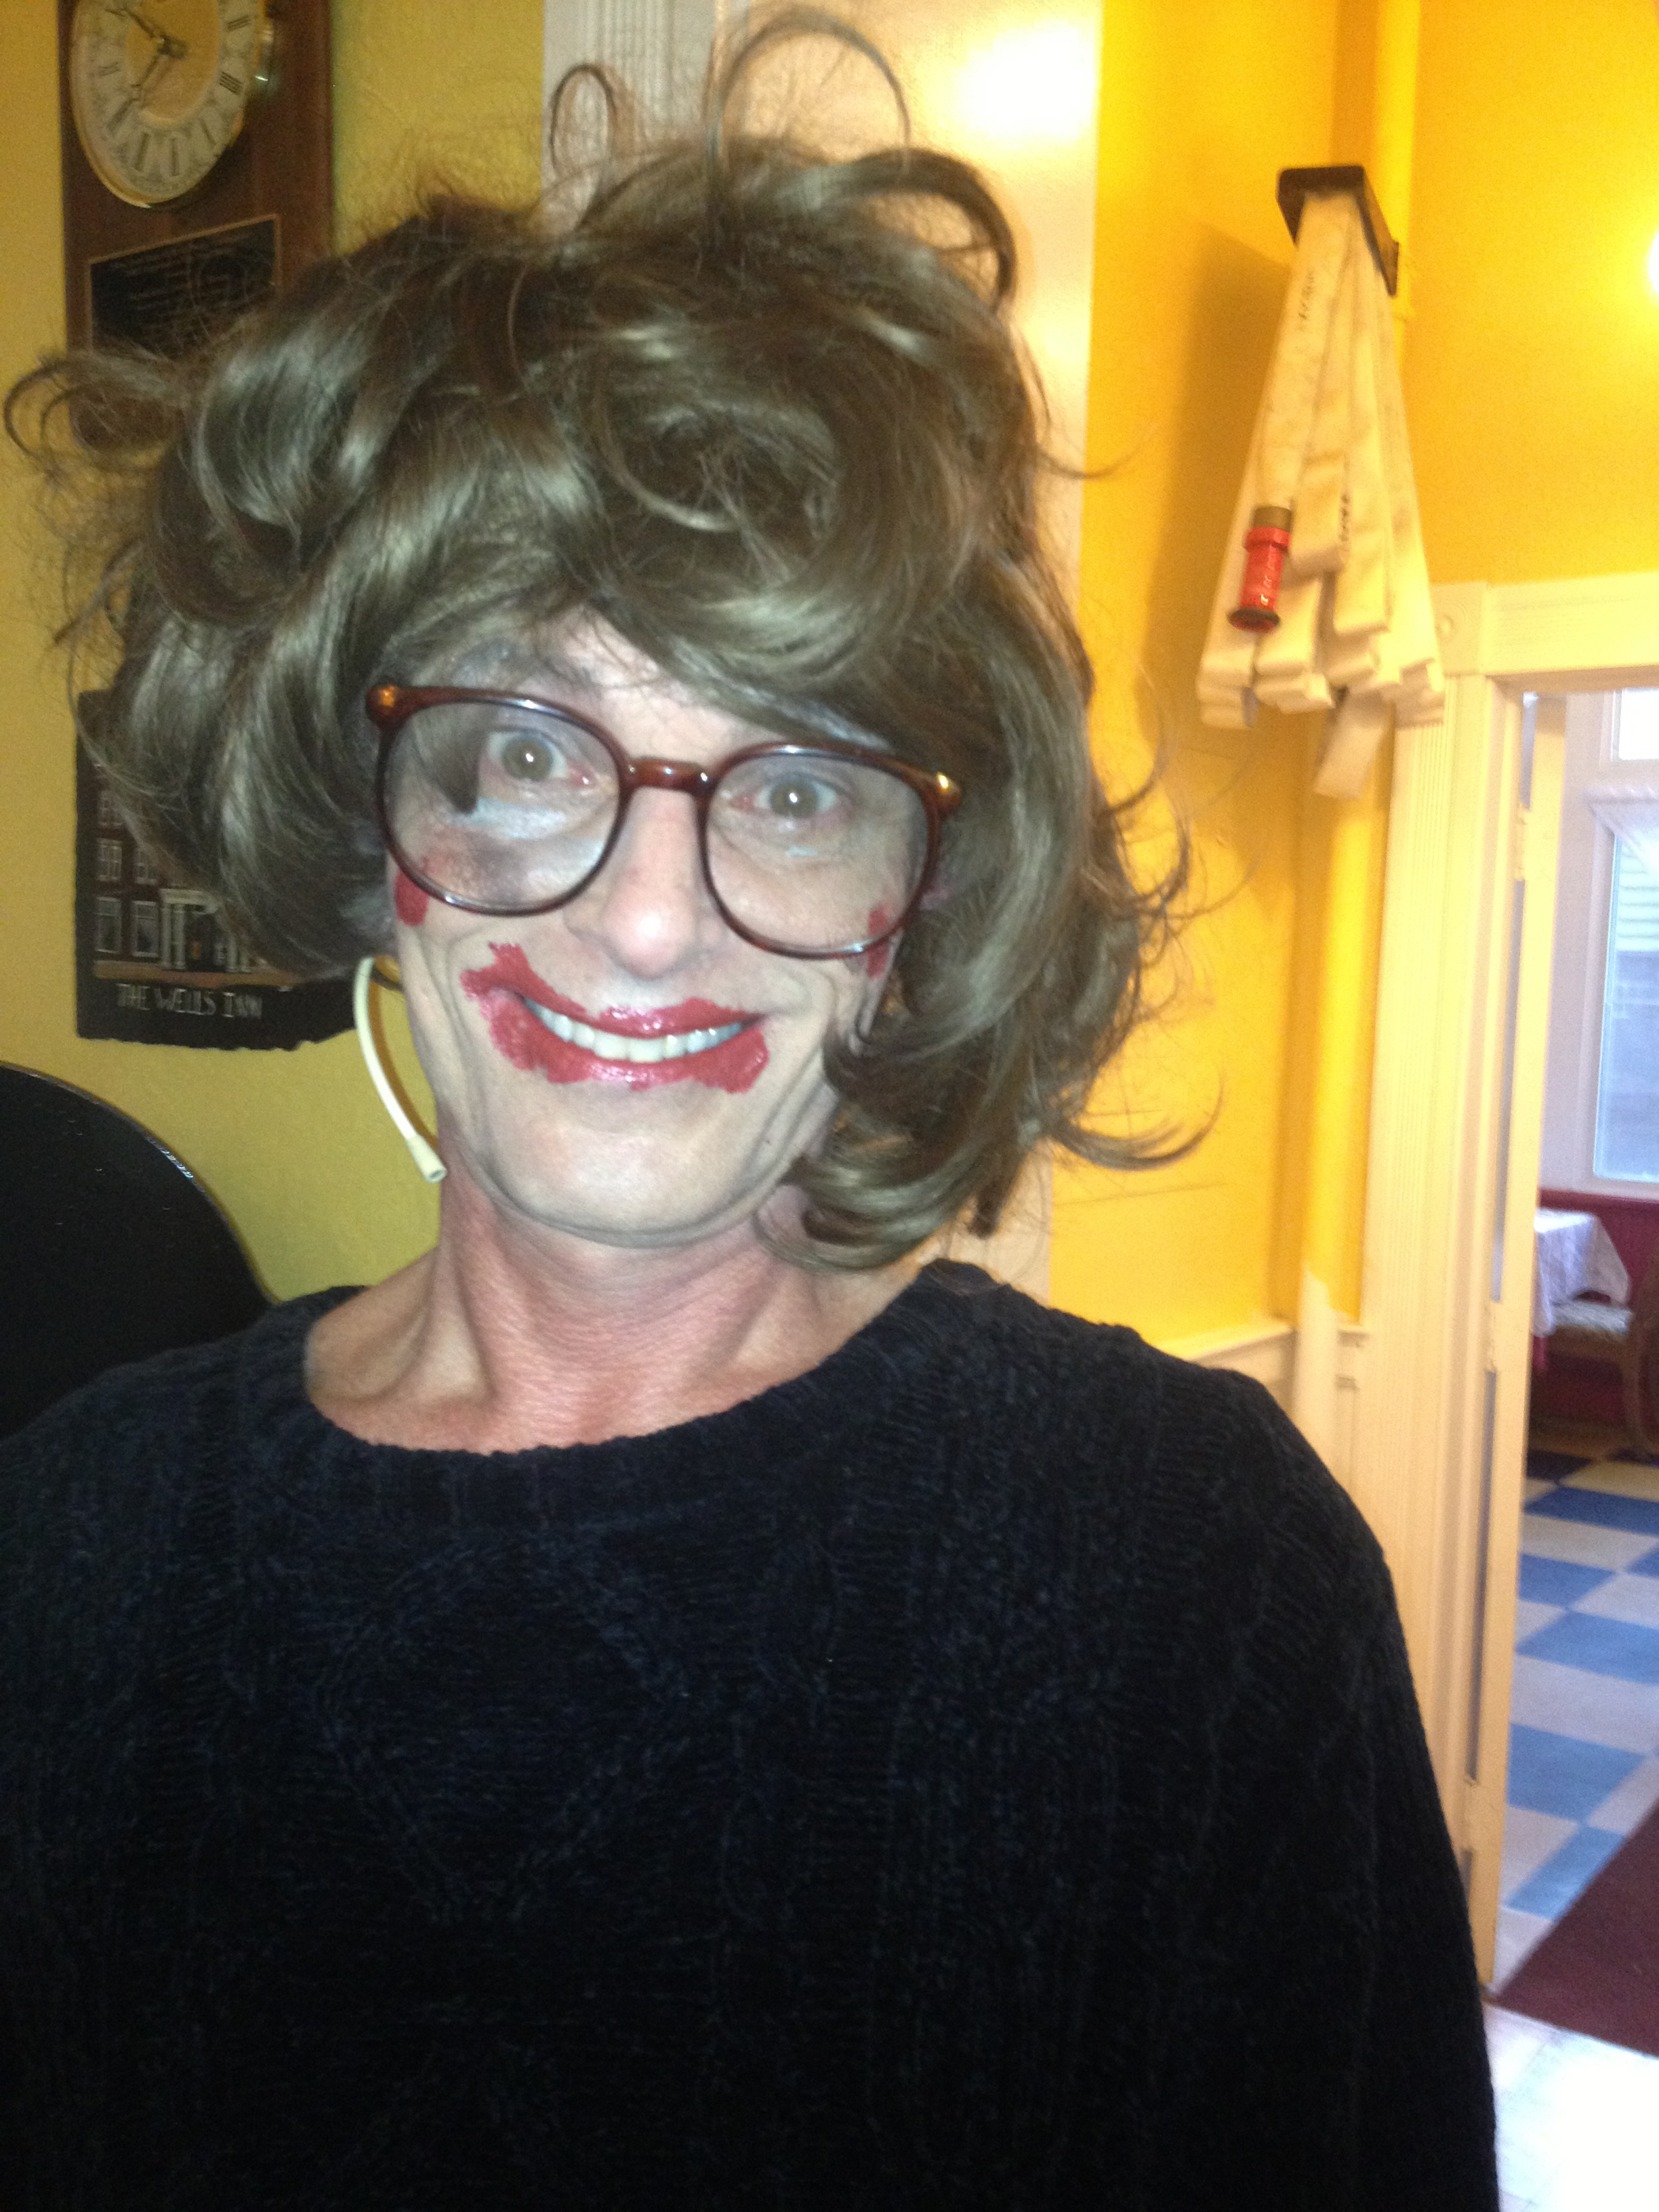 Butch Maxwell as Olive Boyle after Tank and Coach do her make-up